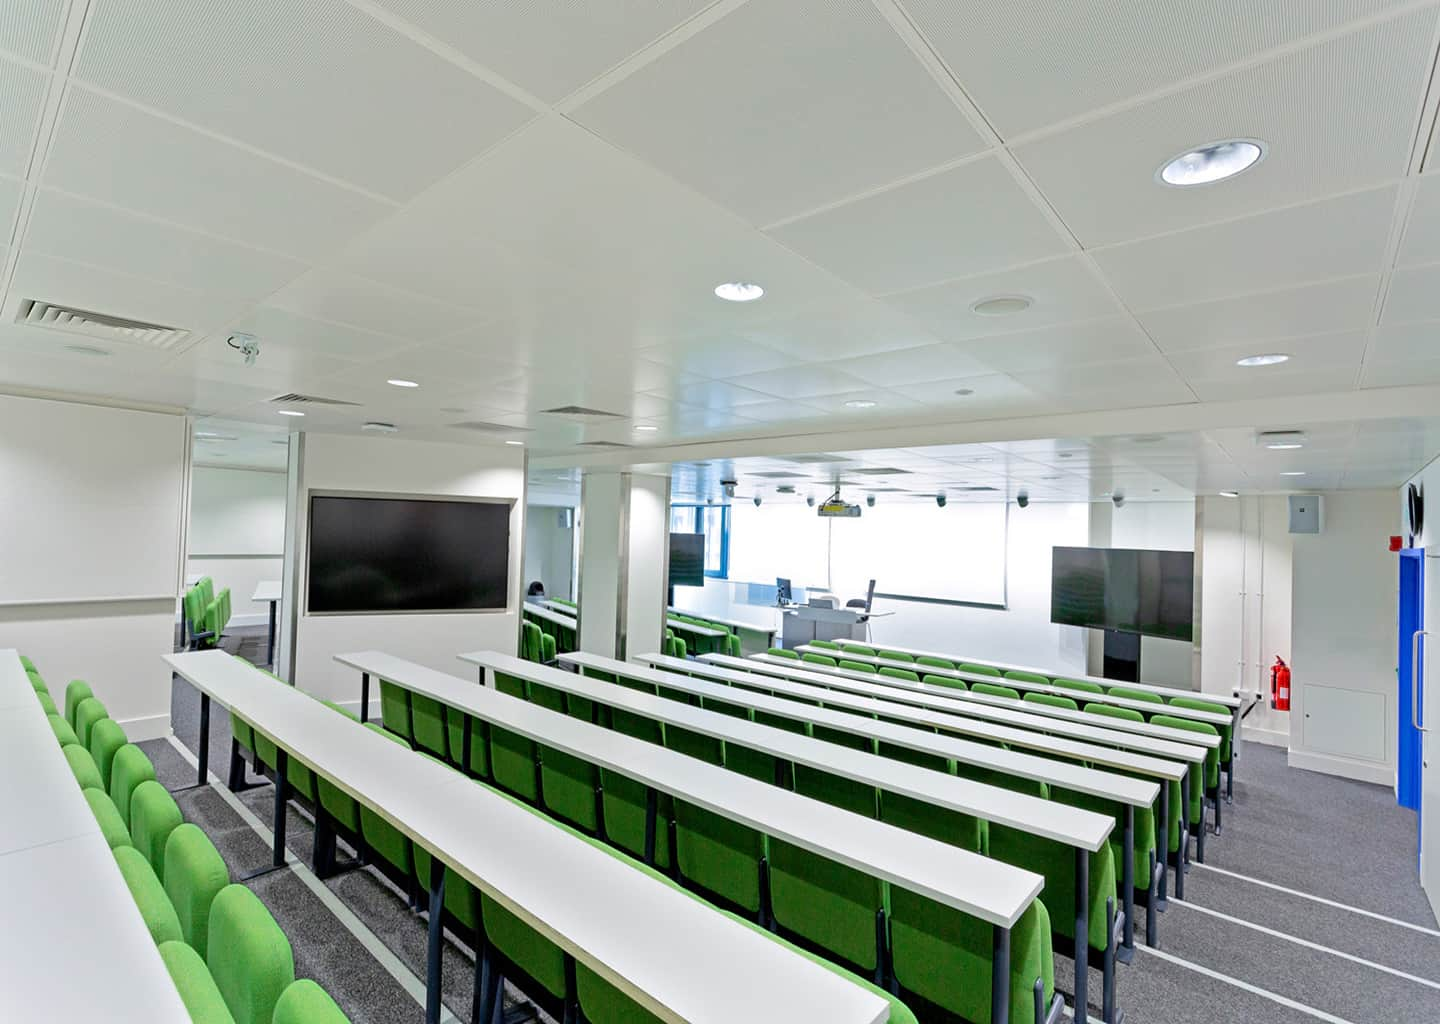 Lecture theatre in the City and Guilds Building